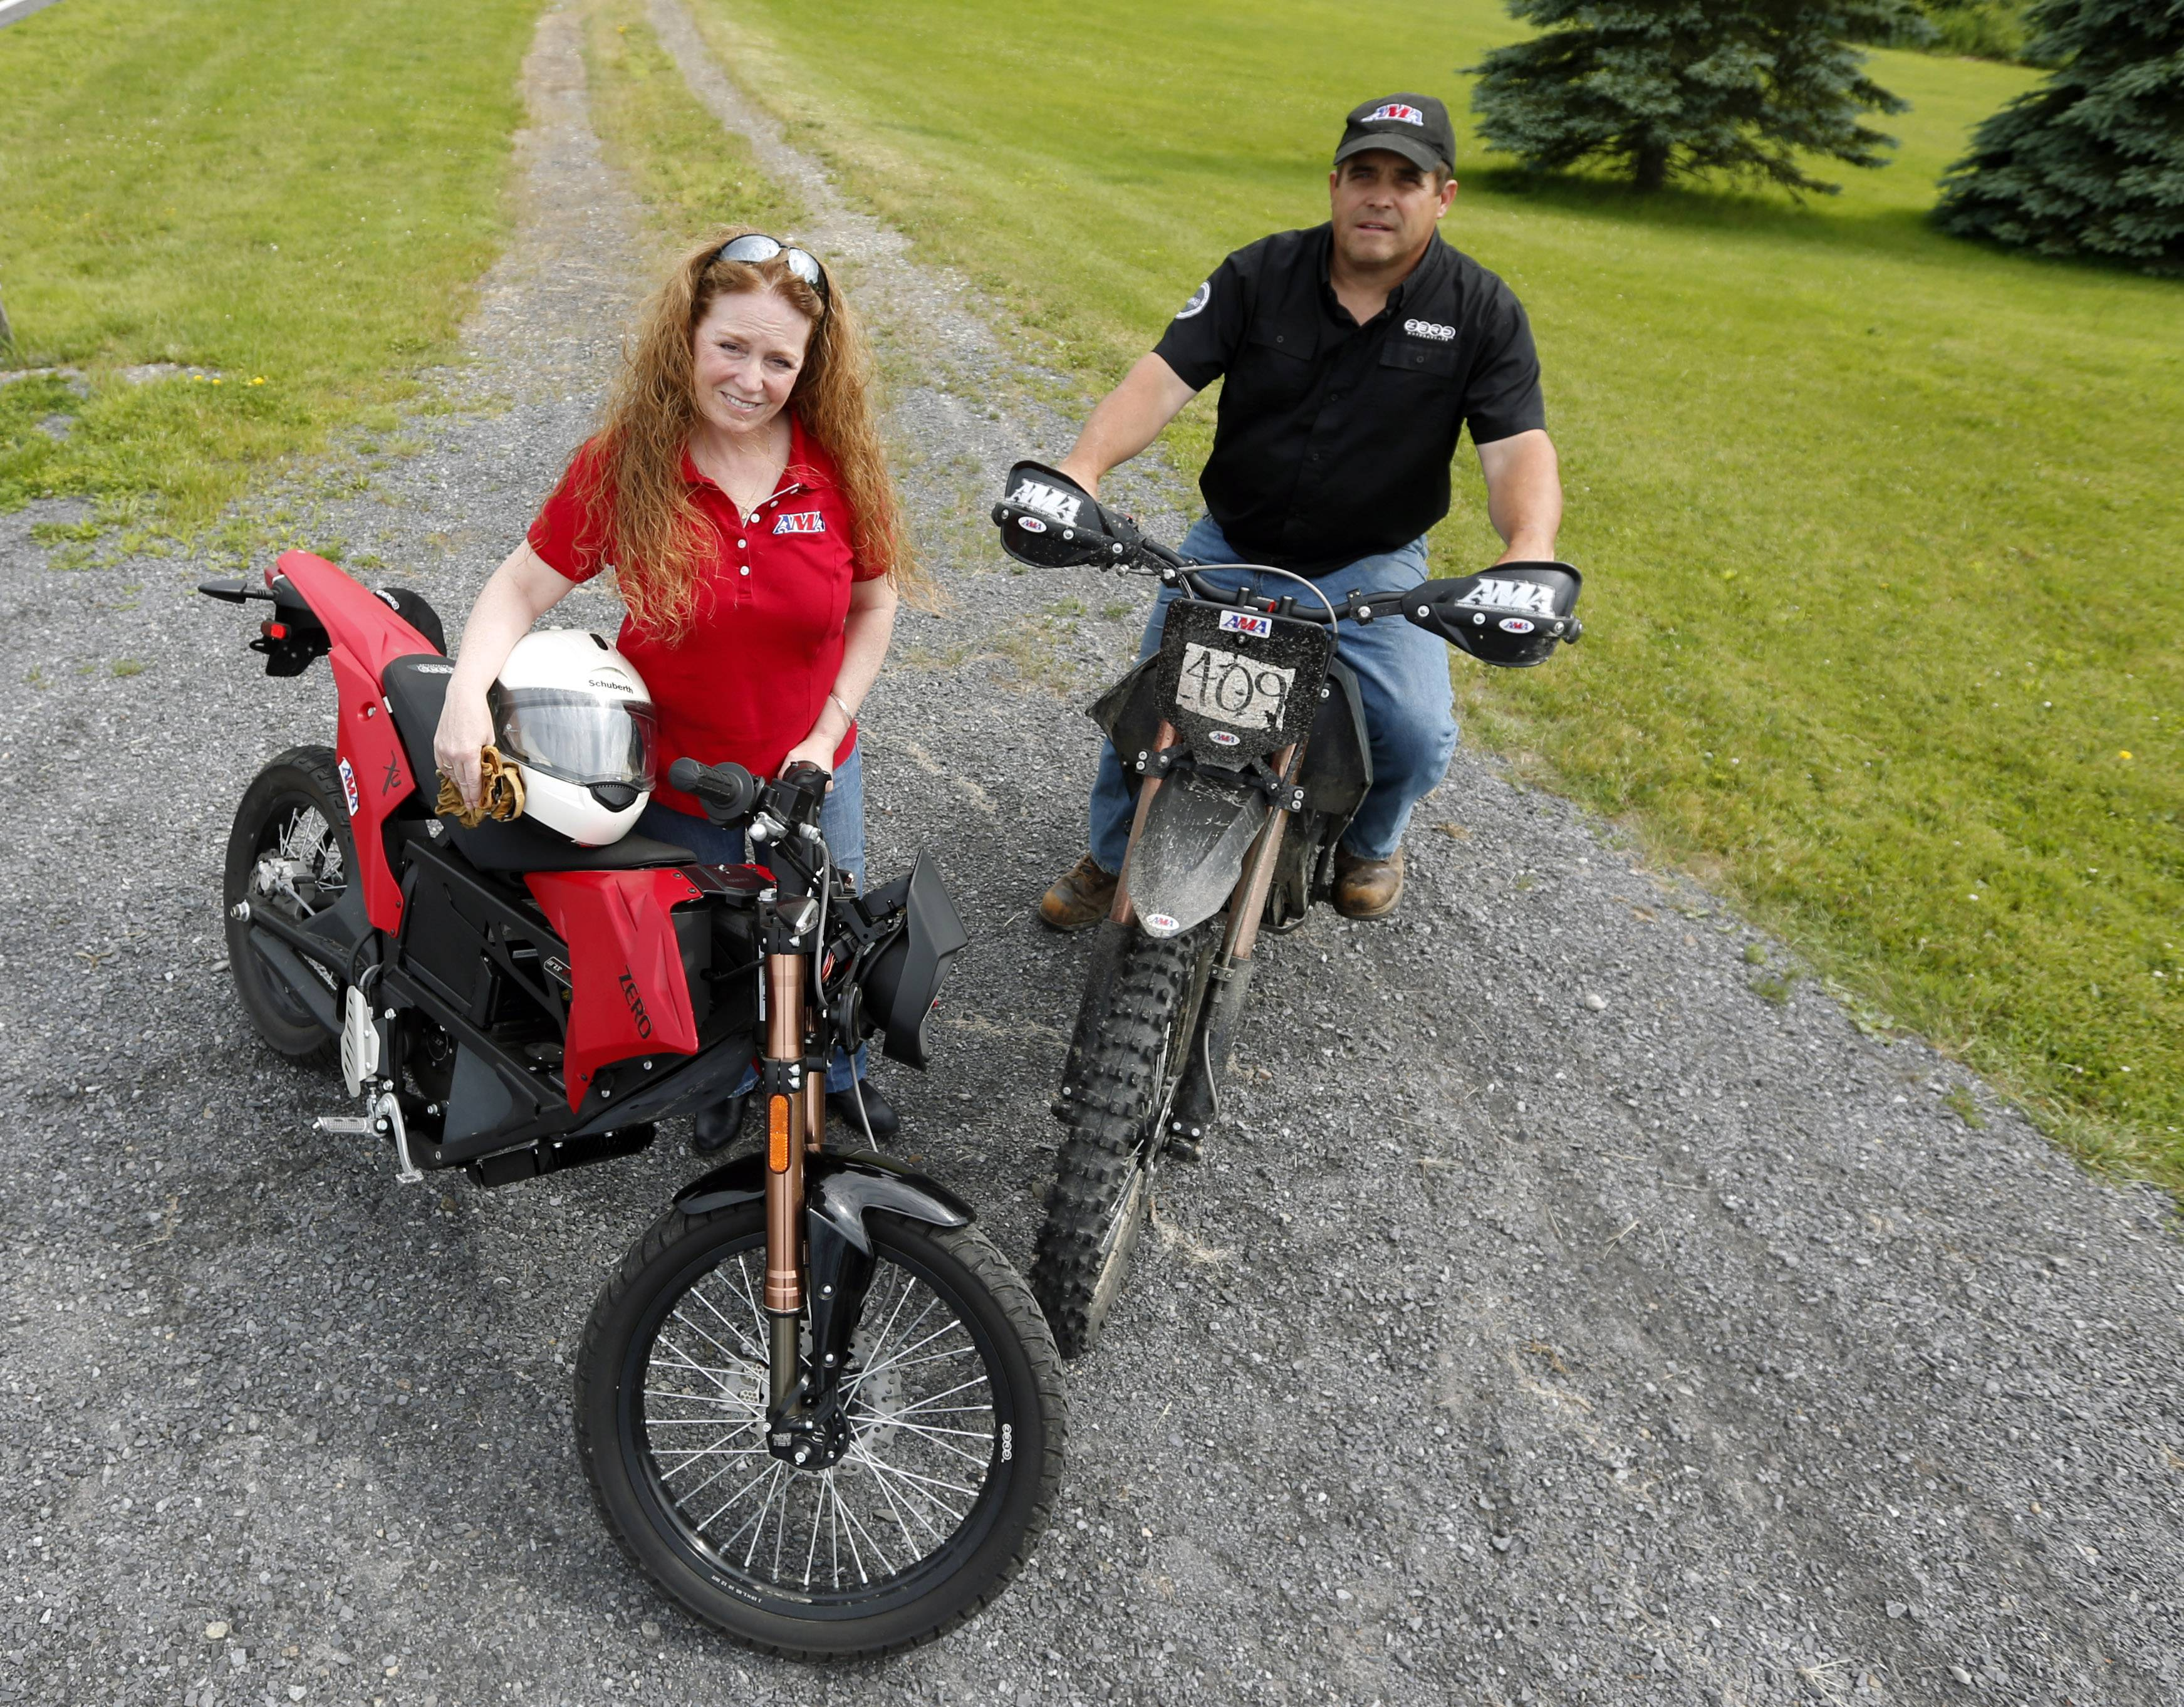 Maggie McNally-Bradshaw and her husband Curt Bradshaw pose with their Zero electric motorcycles in Princetown, N.Y. Startups like Zero, Brammo and Mission are making state-of-the-art electric motorcycles on the West Coast. Harley-Davidson's unveiling of its prototype electric motorcycle LiveWire is likely to give a boost to smaller companies already producing plug-in bikes.